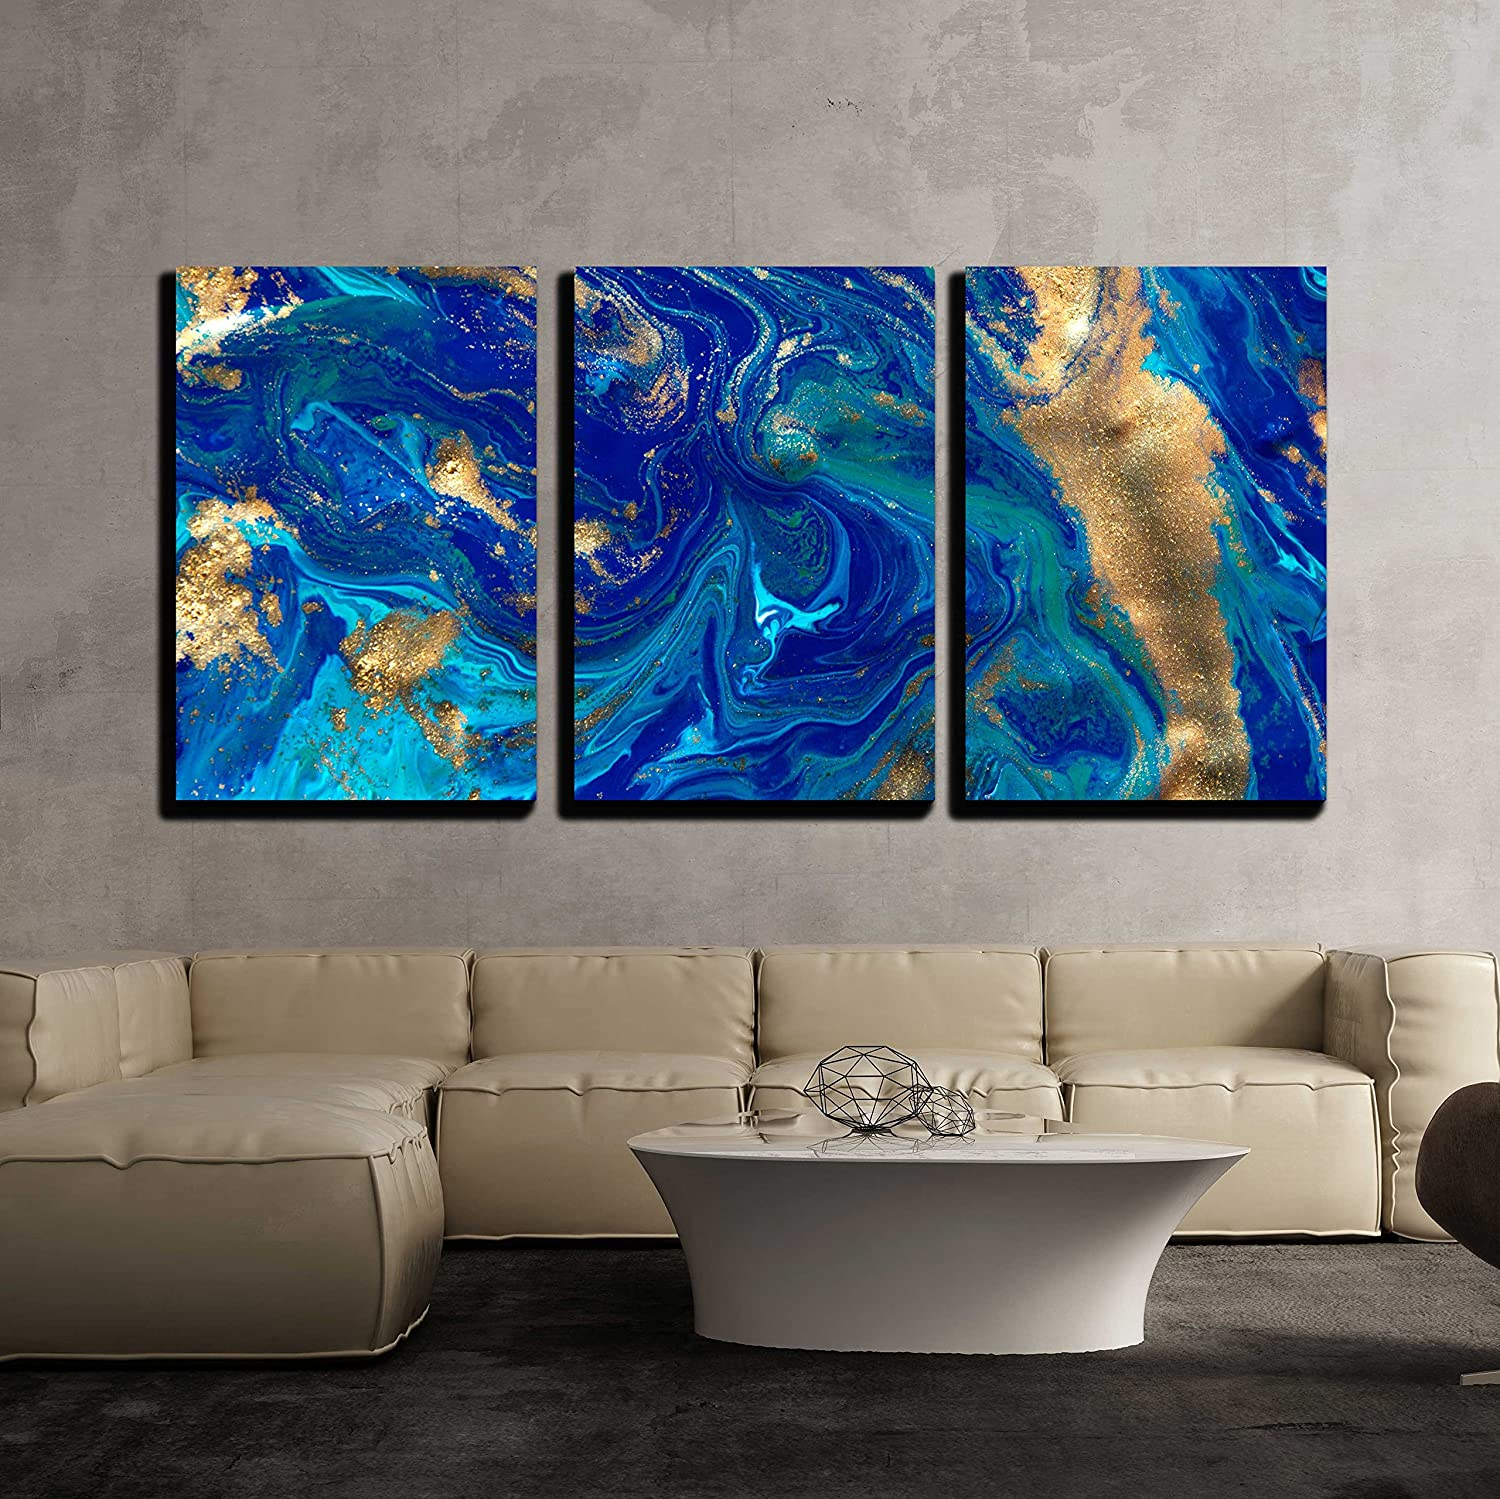 """wall26 - 3 Piece Canvas Wall Art - Marbled Blue Abstract Background. Liquid Marble Pattern. - Modern Home Decor Stretched and Framed Ready to Hang - 16""""x24""""x3 Panels"""